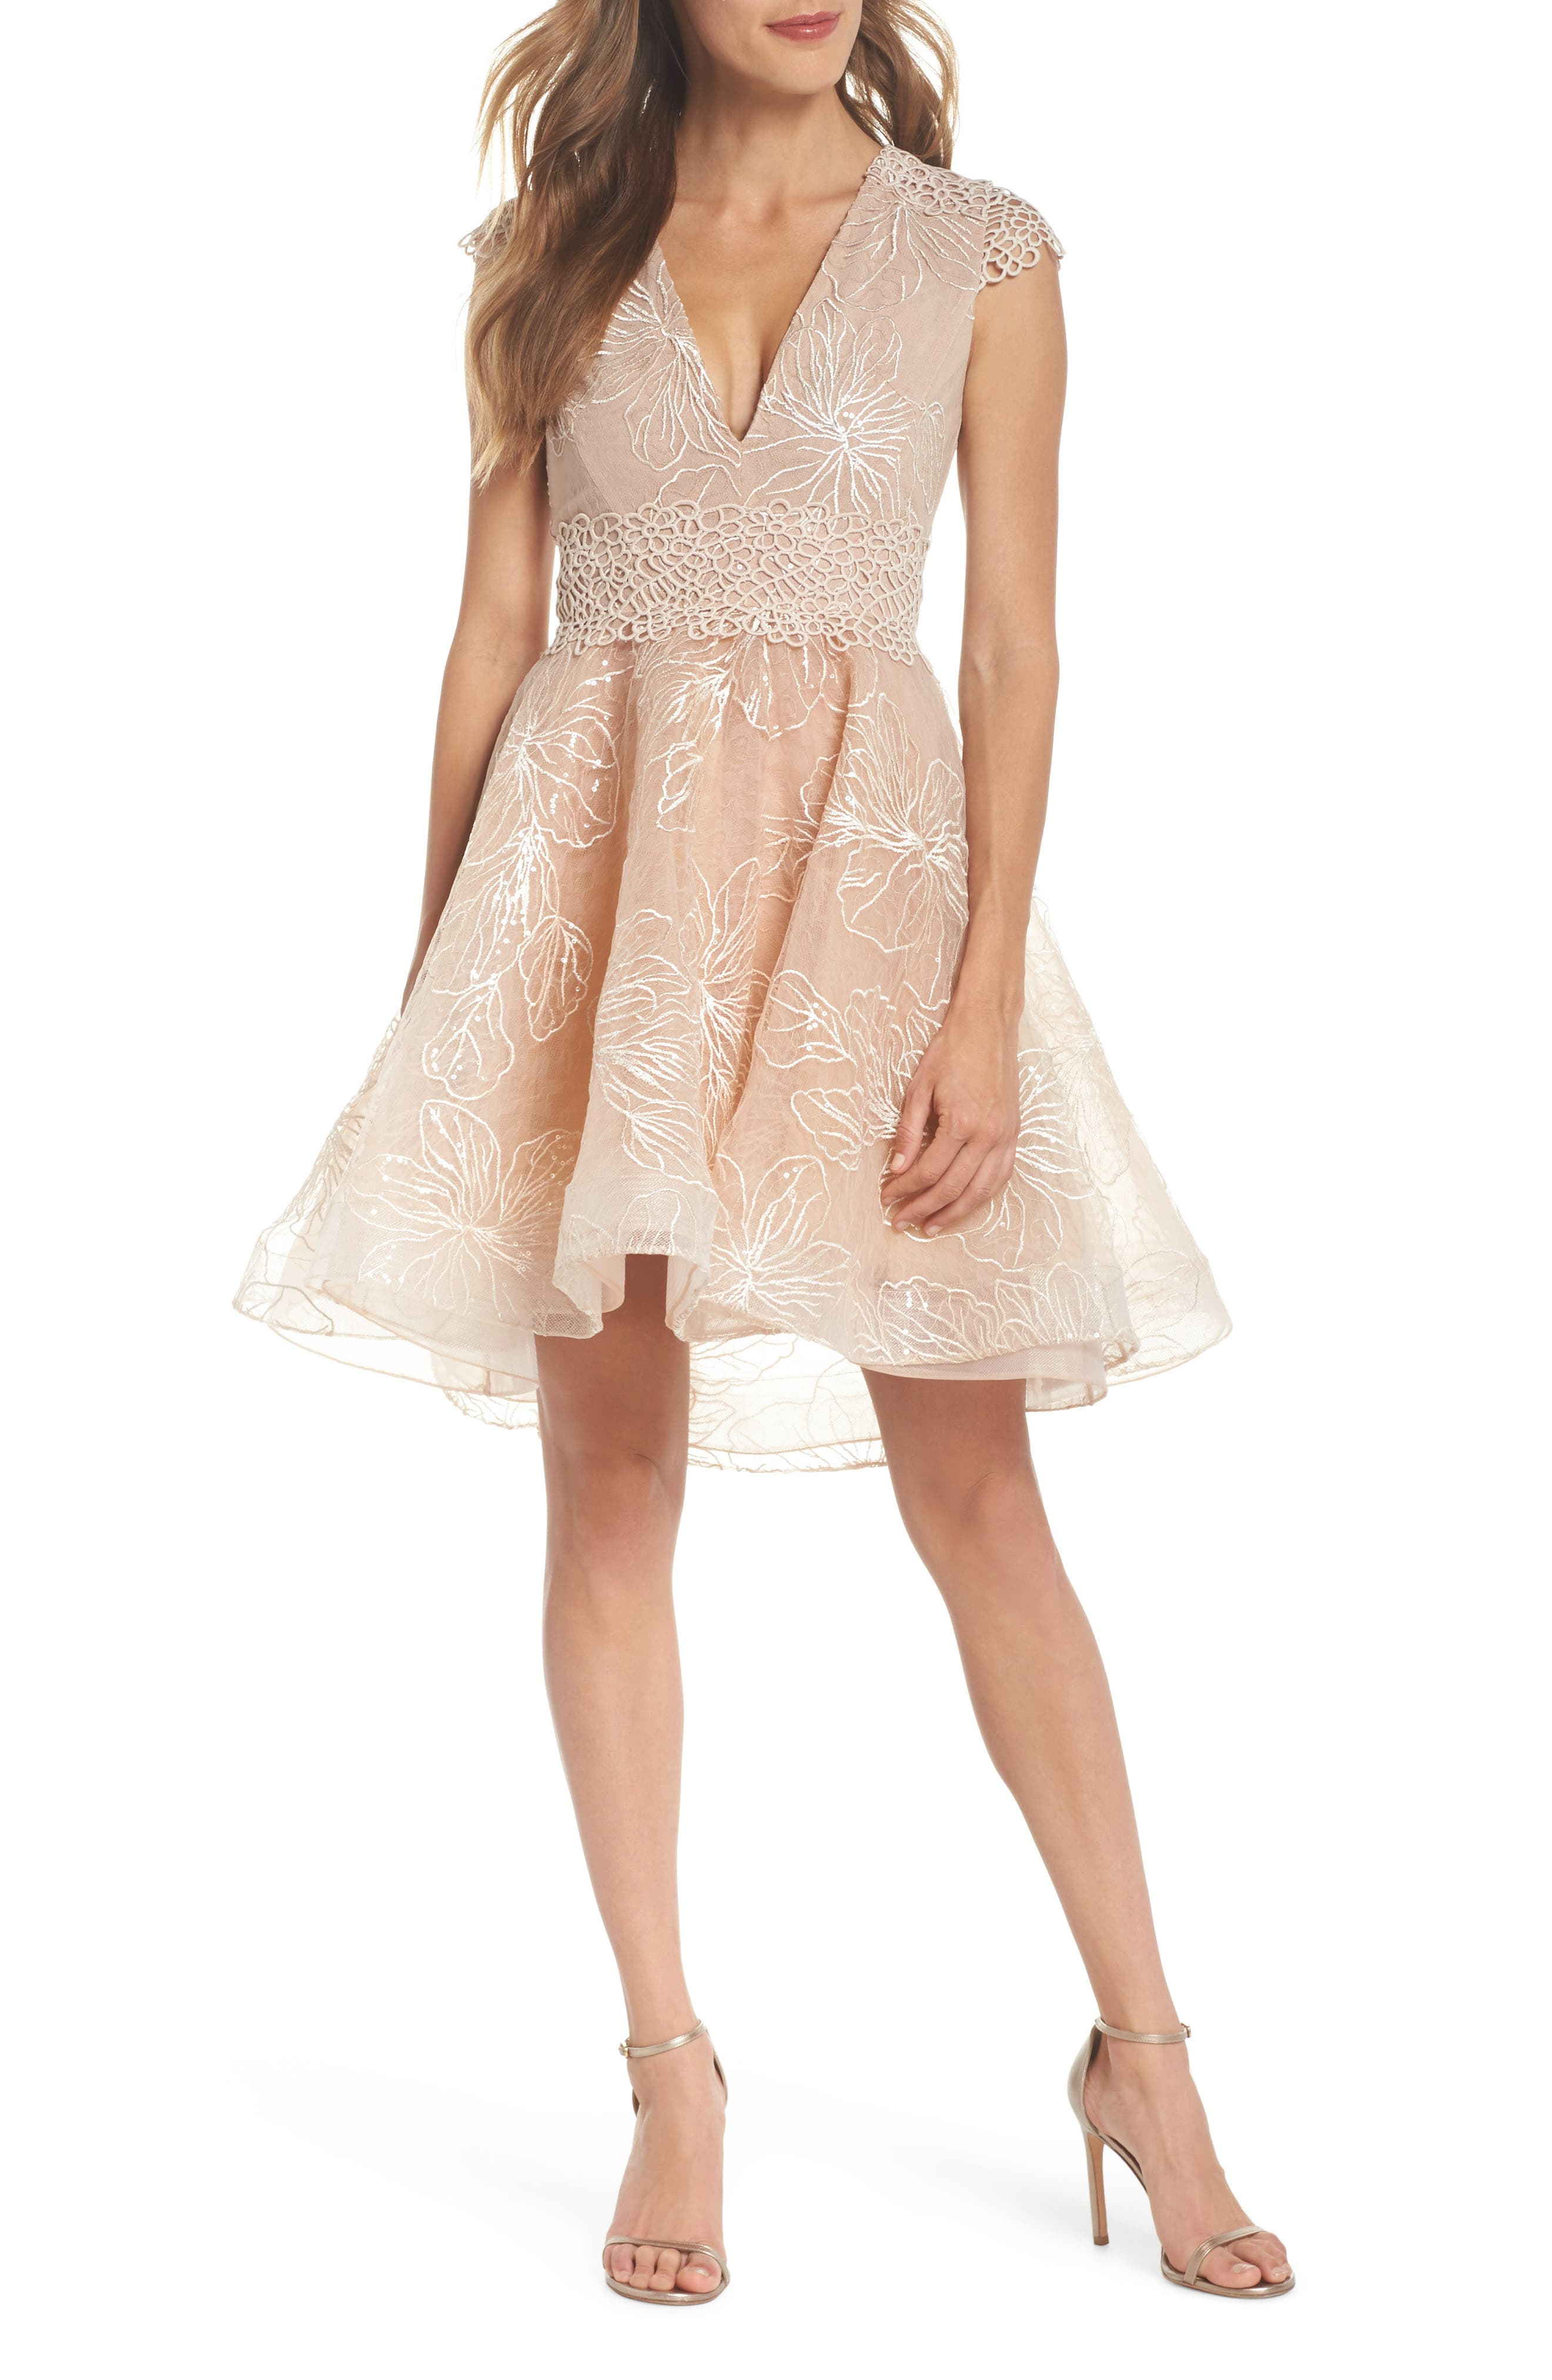 Fiore Sequin Fit & Flare Dress,                             Main thumbnail 1, color,                             250